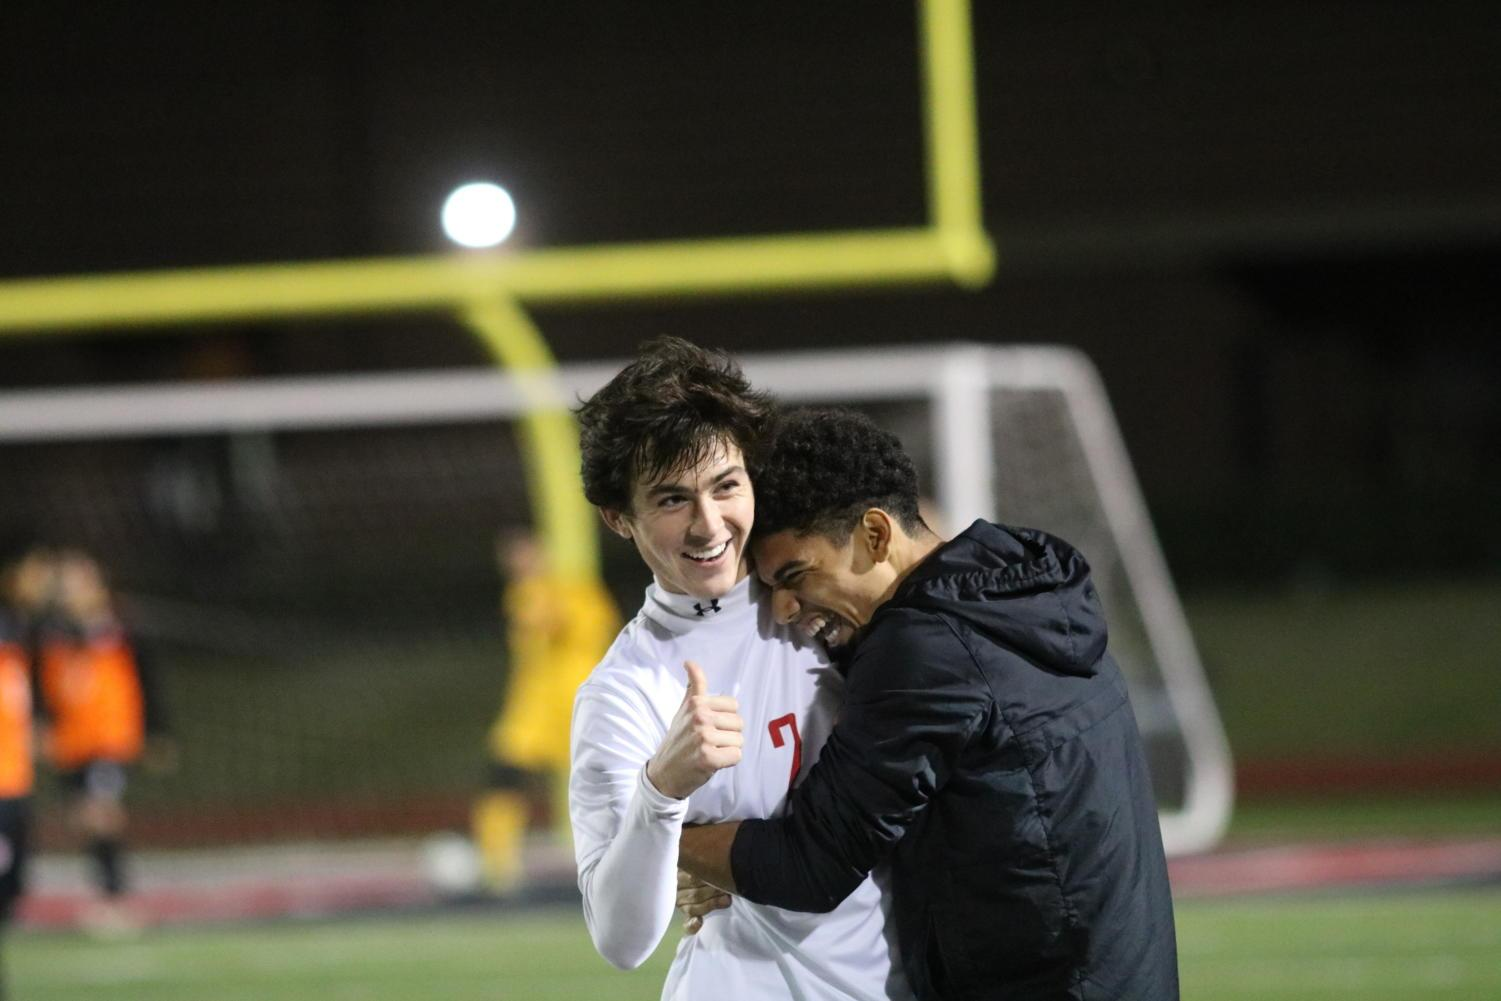 Coppell Cowboys senior forward Francisco Redondo hugs senior fullback defender Marshall Board after he makes a goal during the second half of the game on Feb. 9 at Buddy Echols Field. The Coppell Cowboys defeated the WT White Longhorns 2-1.